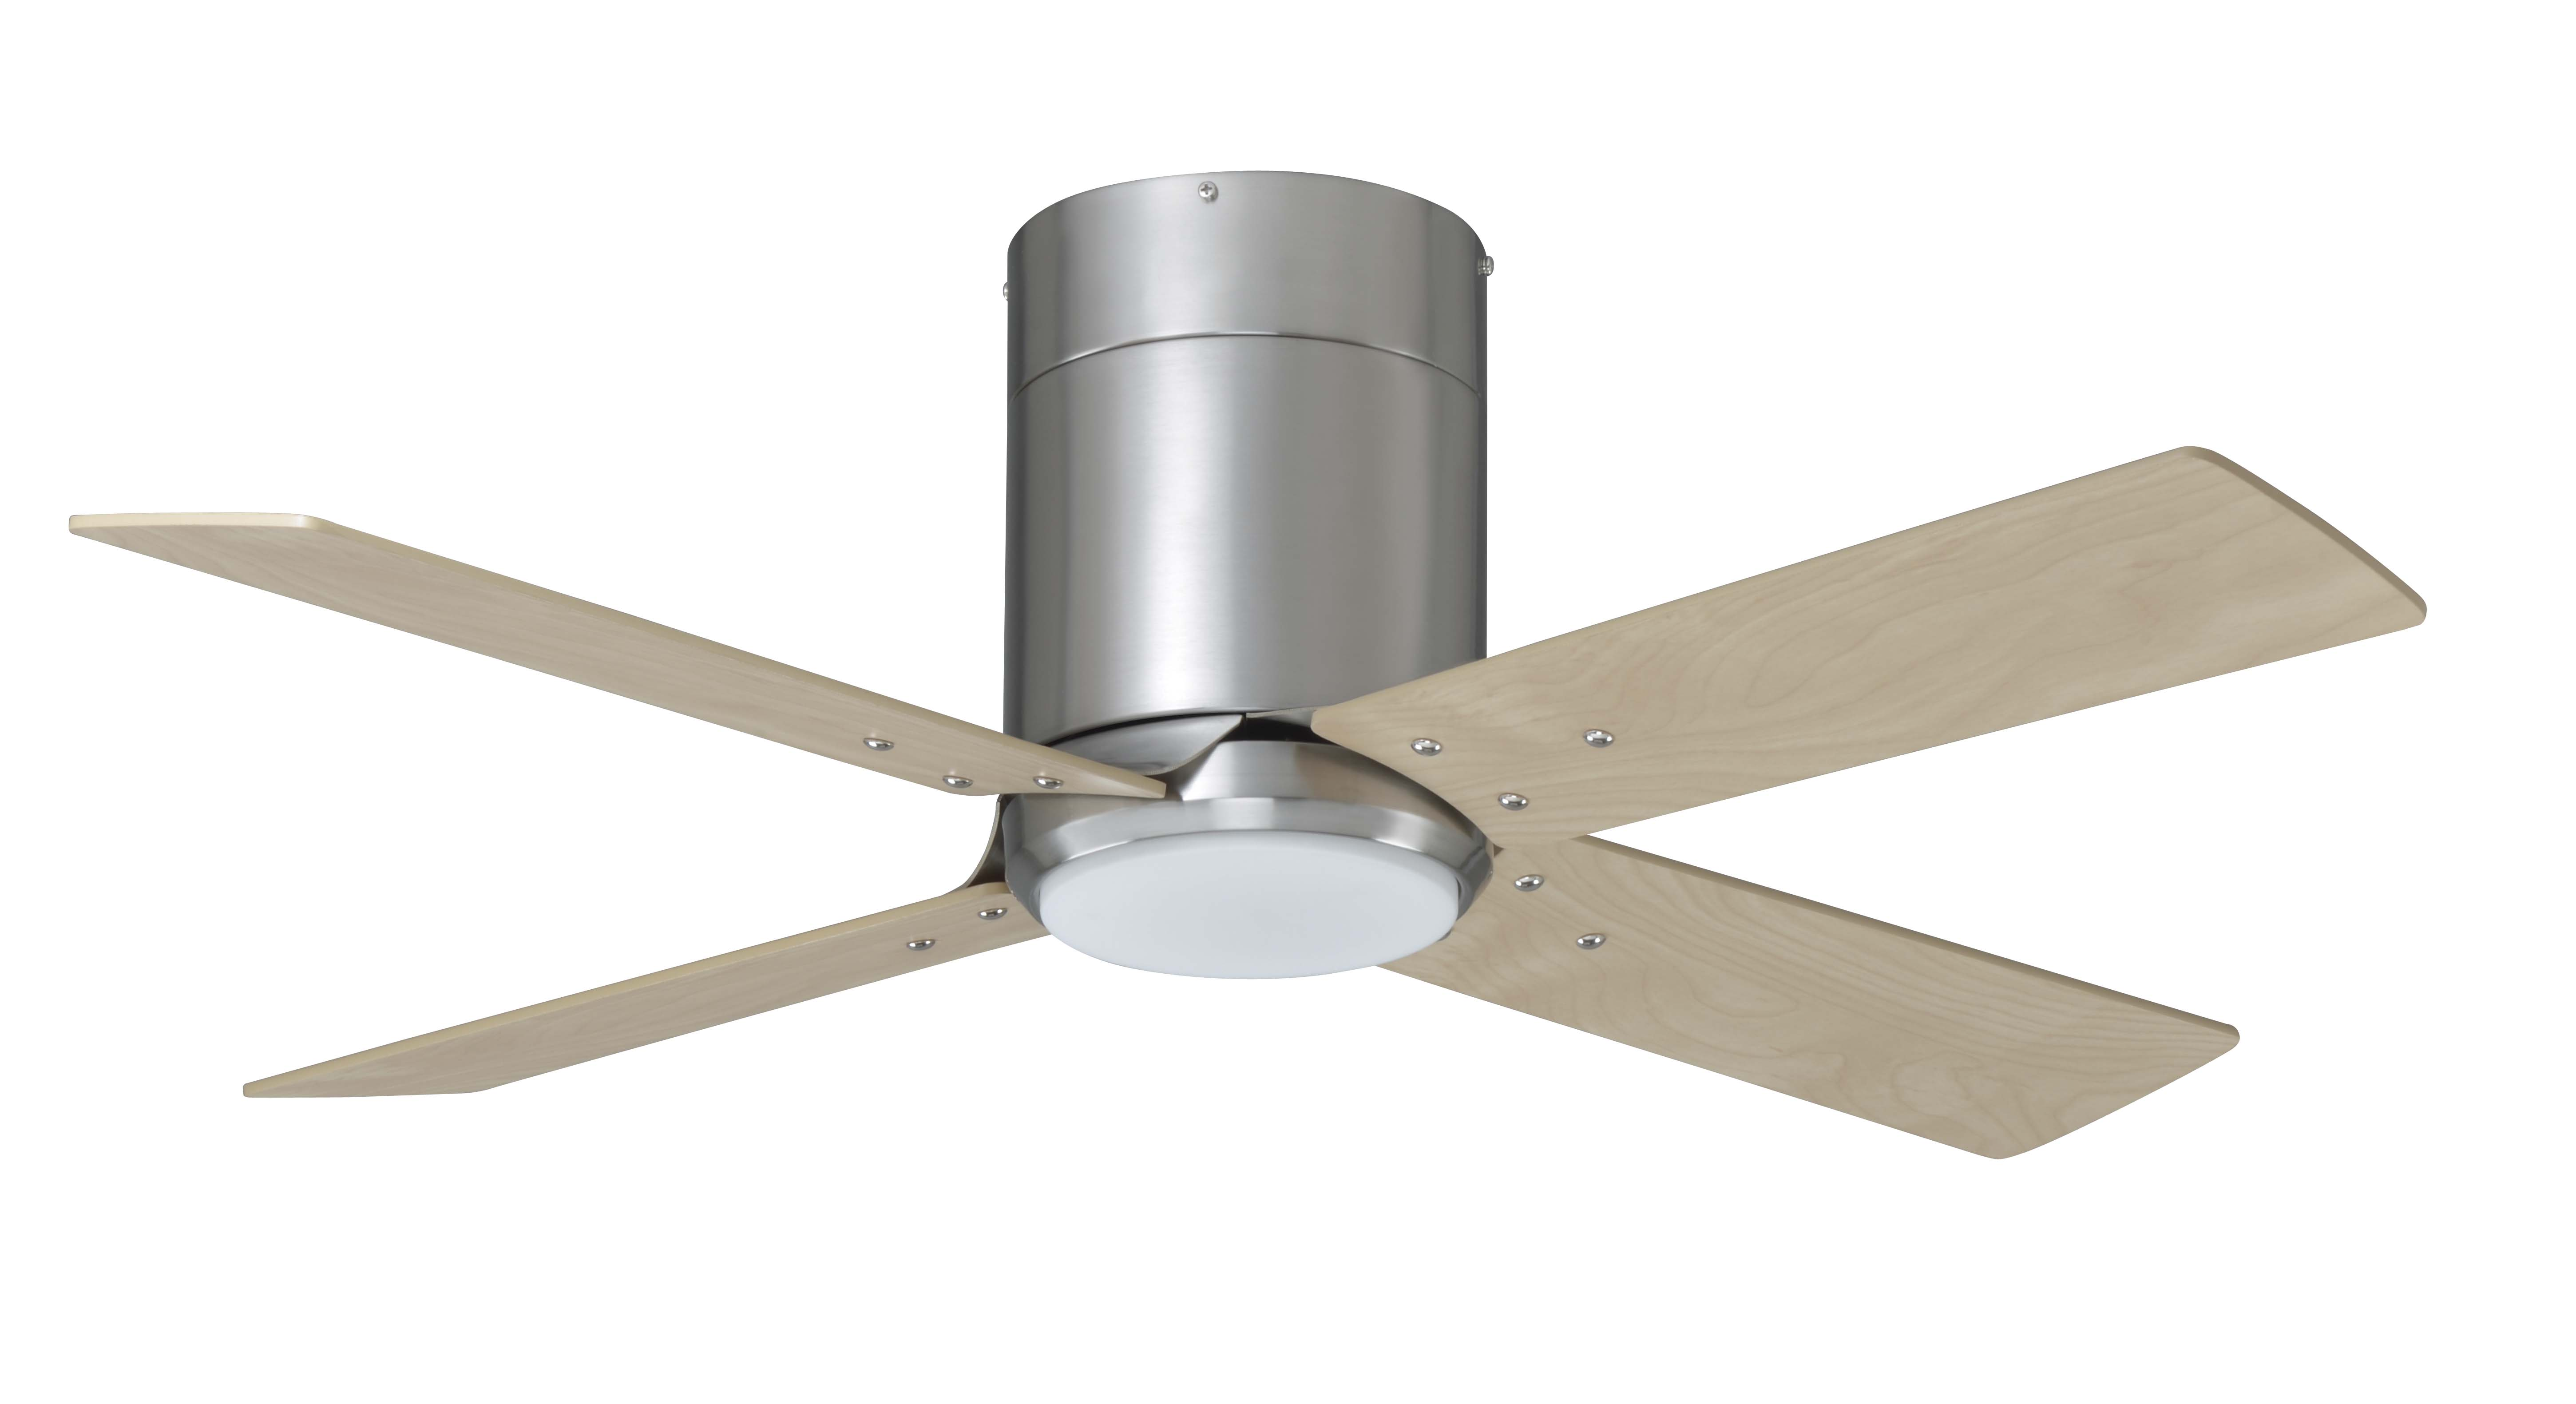 RP Lighting Fans Supplier for electrical distributors & lighting